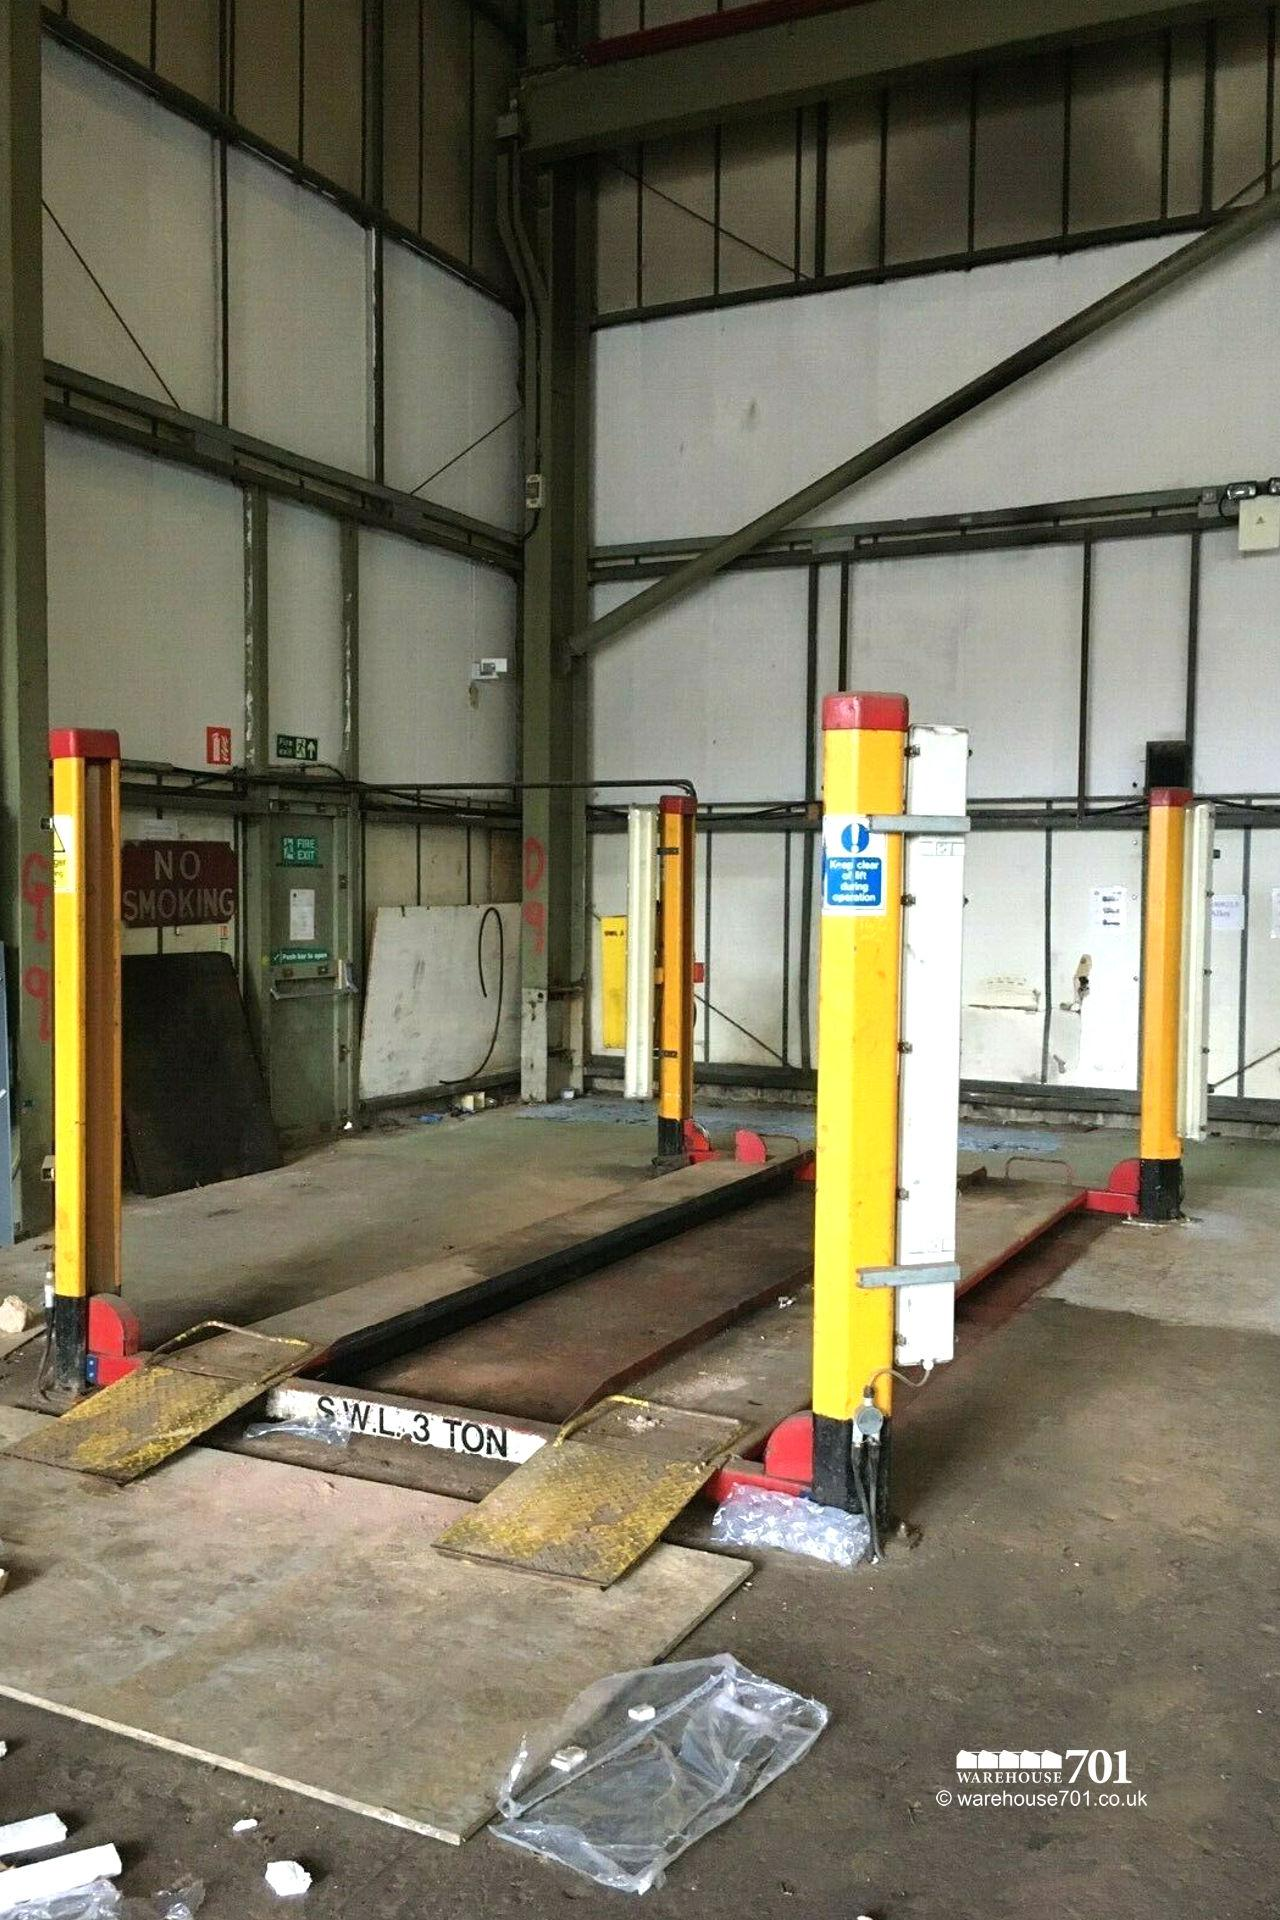 4 Post Lifting Ramp By Laycock 3 Phase Working Condition